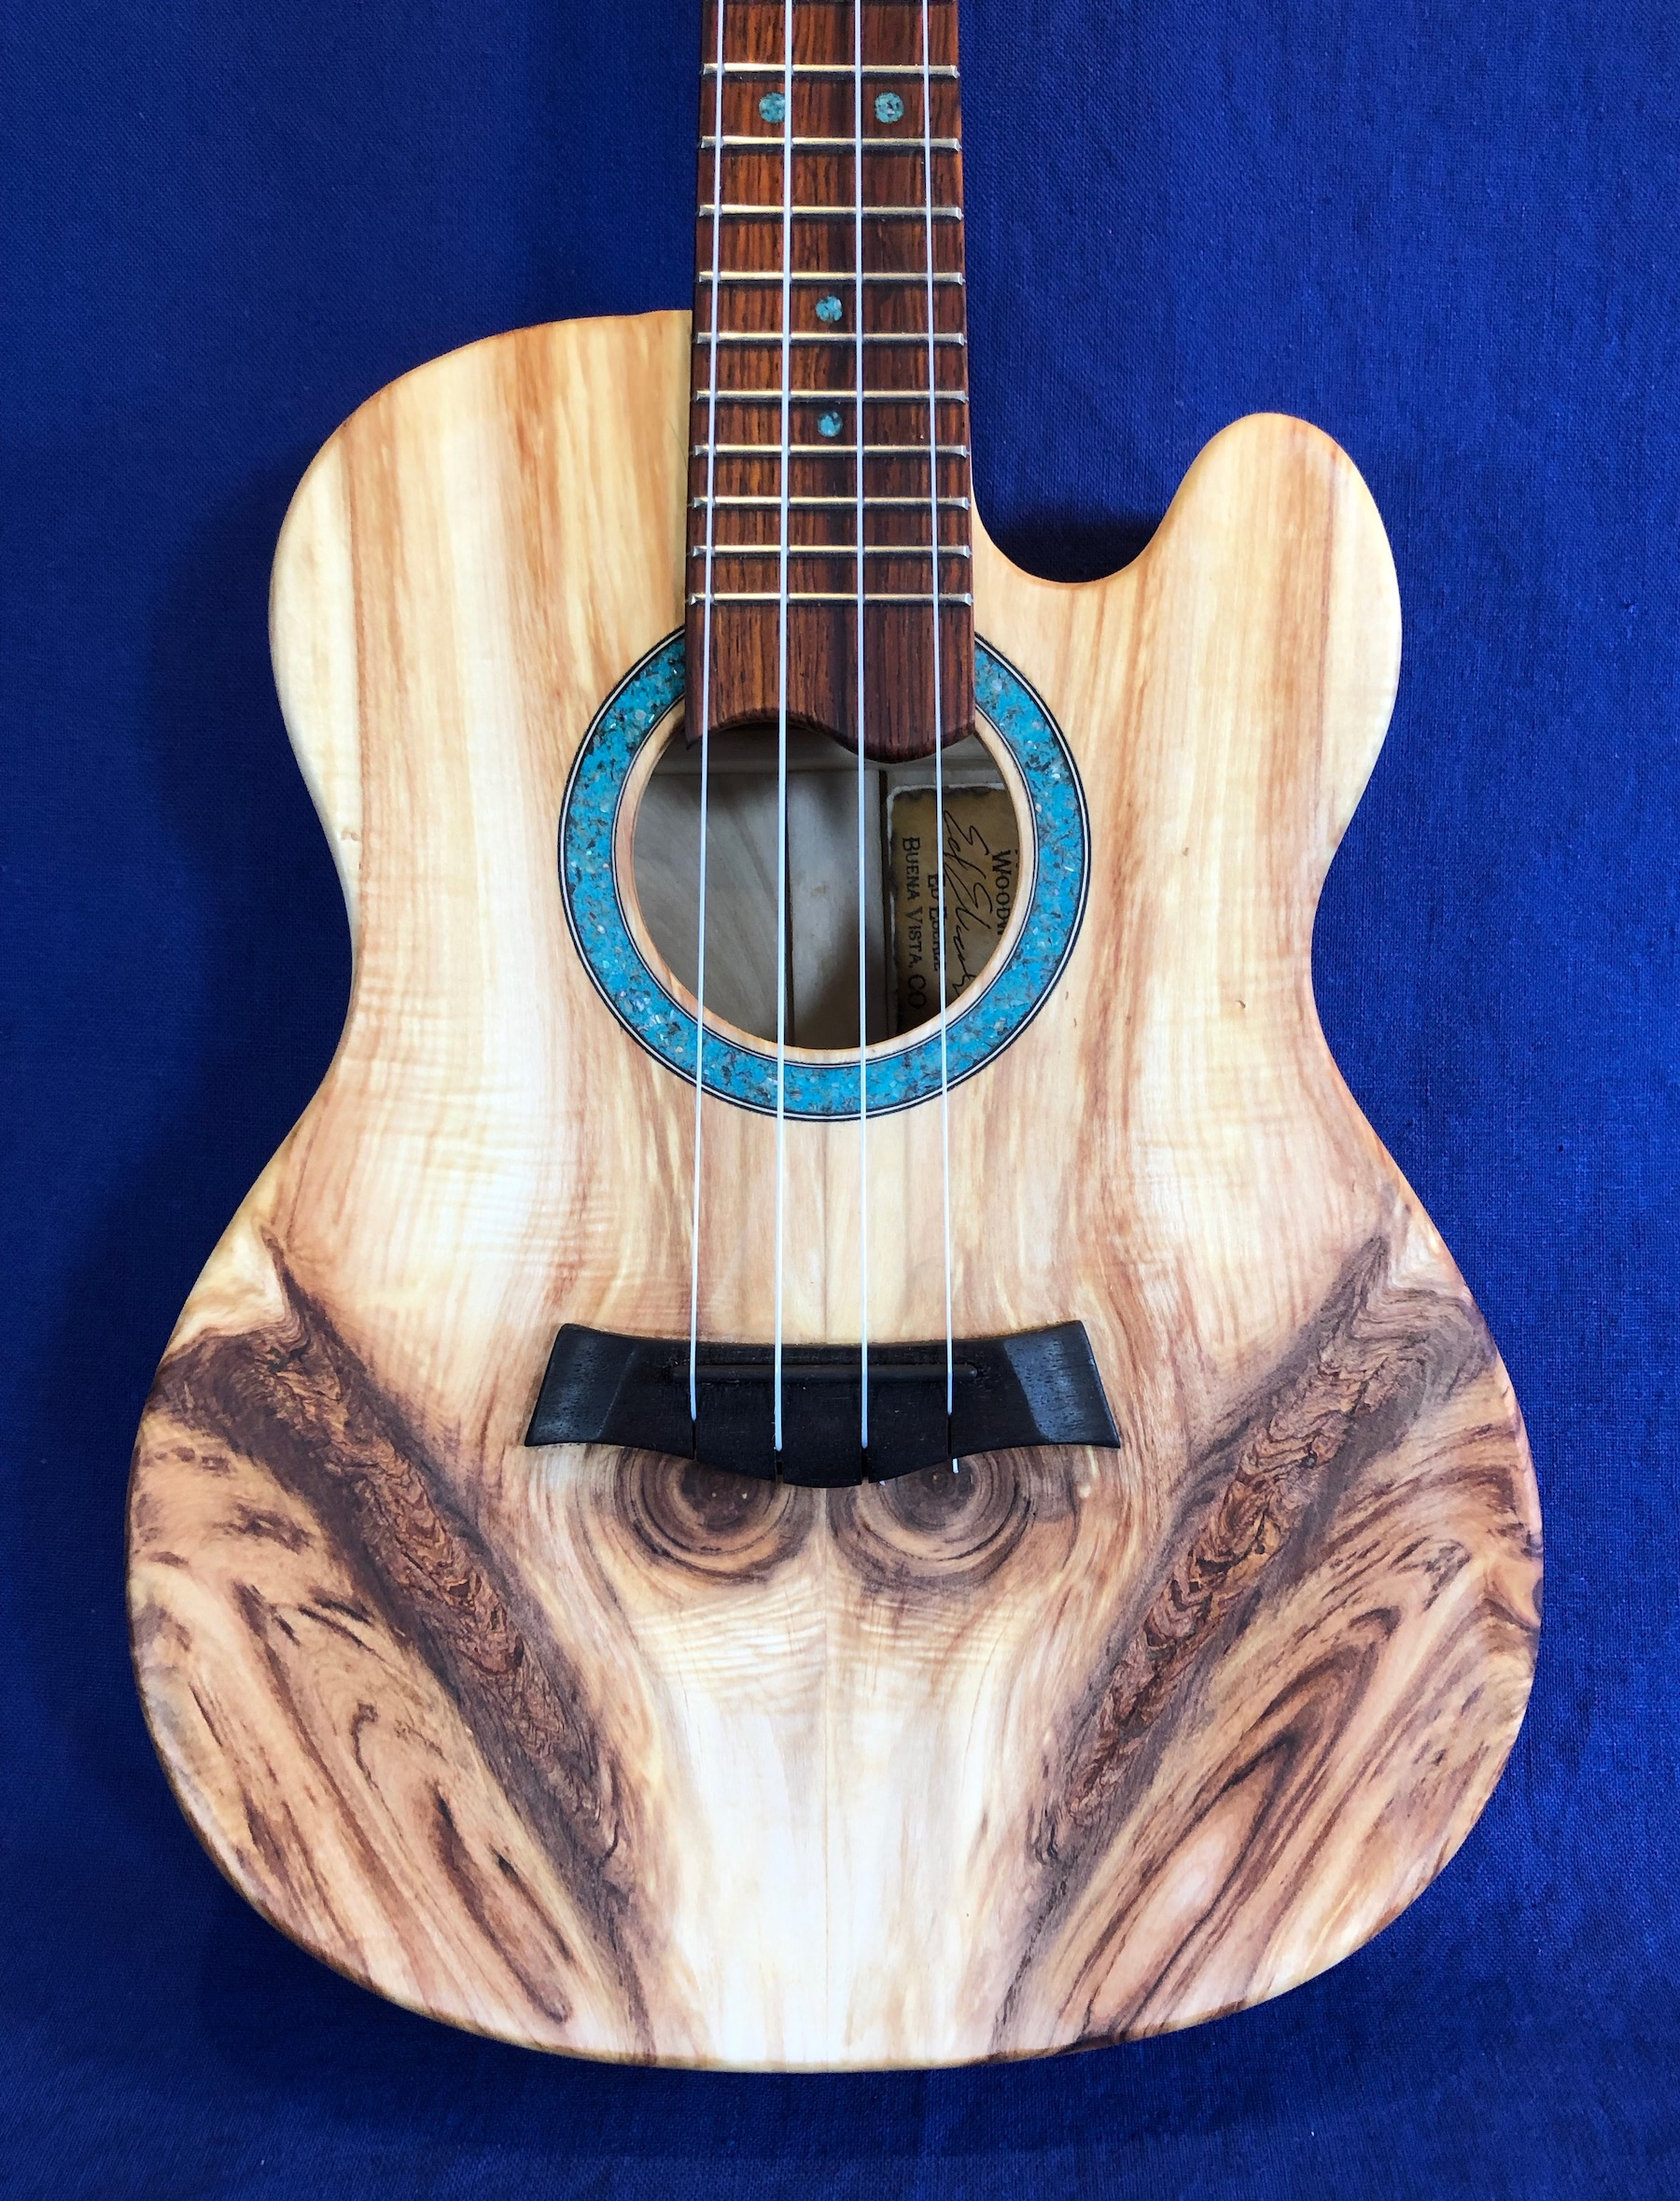 Aspen tenor tele body